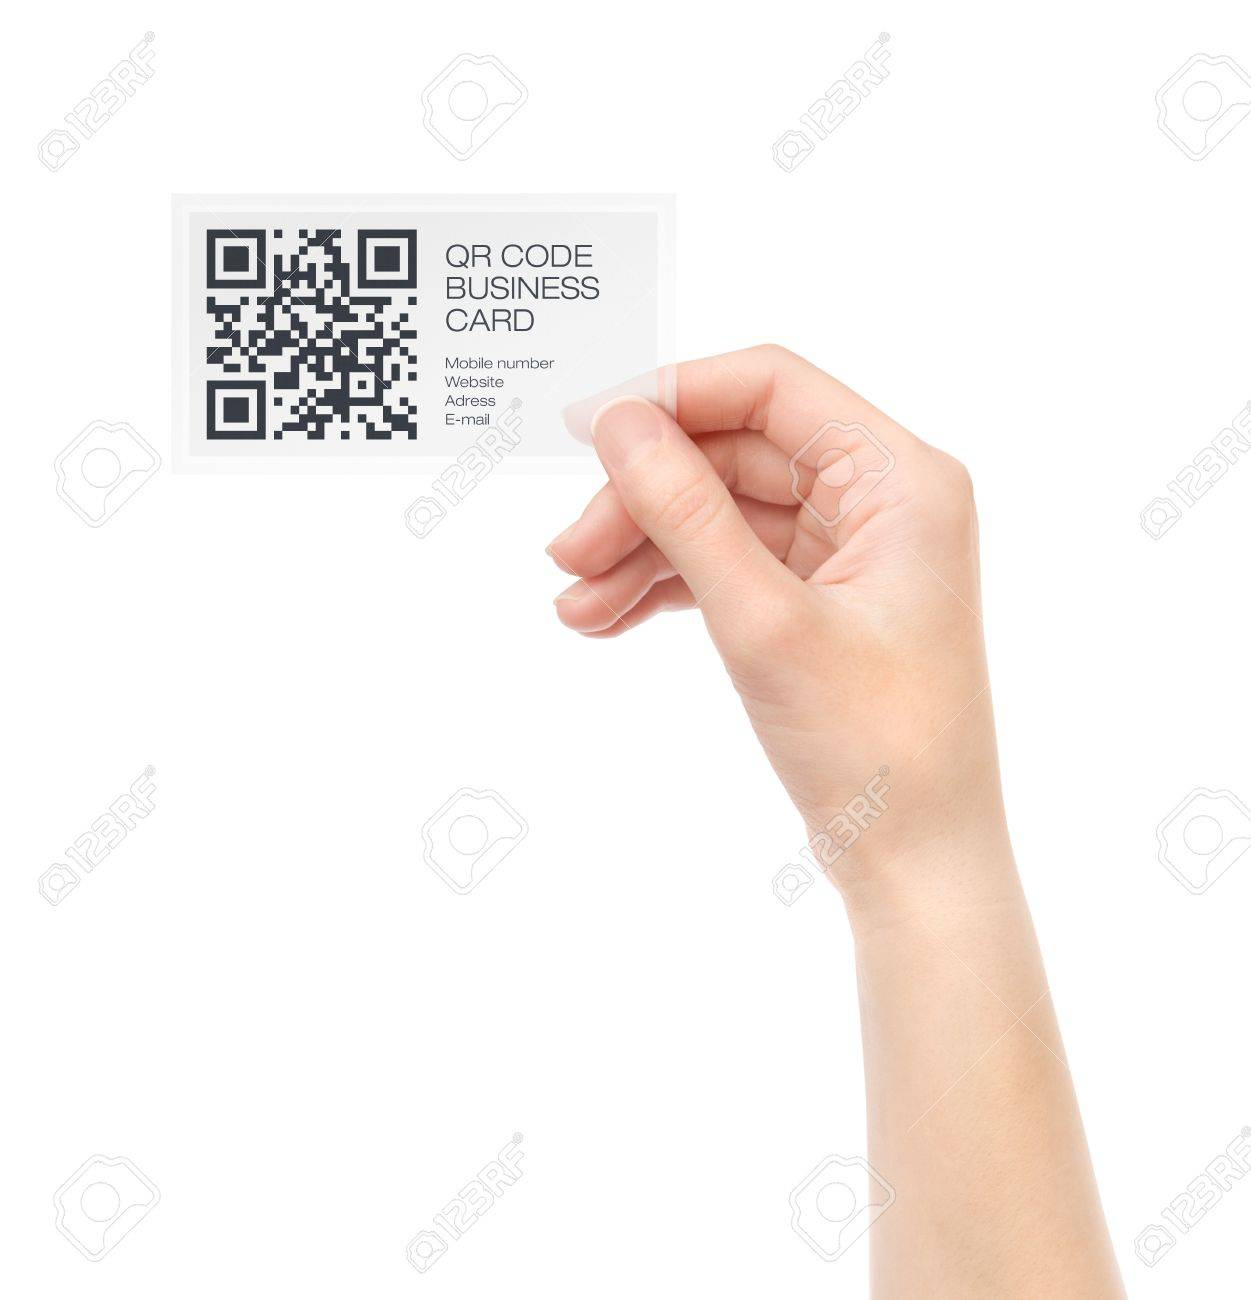 Barcode business card gallery free business cards barcode for business card choice image free business cards female hand holding transparent business card with magicingreecefo Choice Image